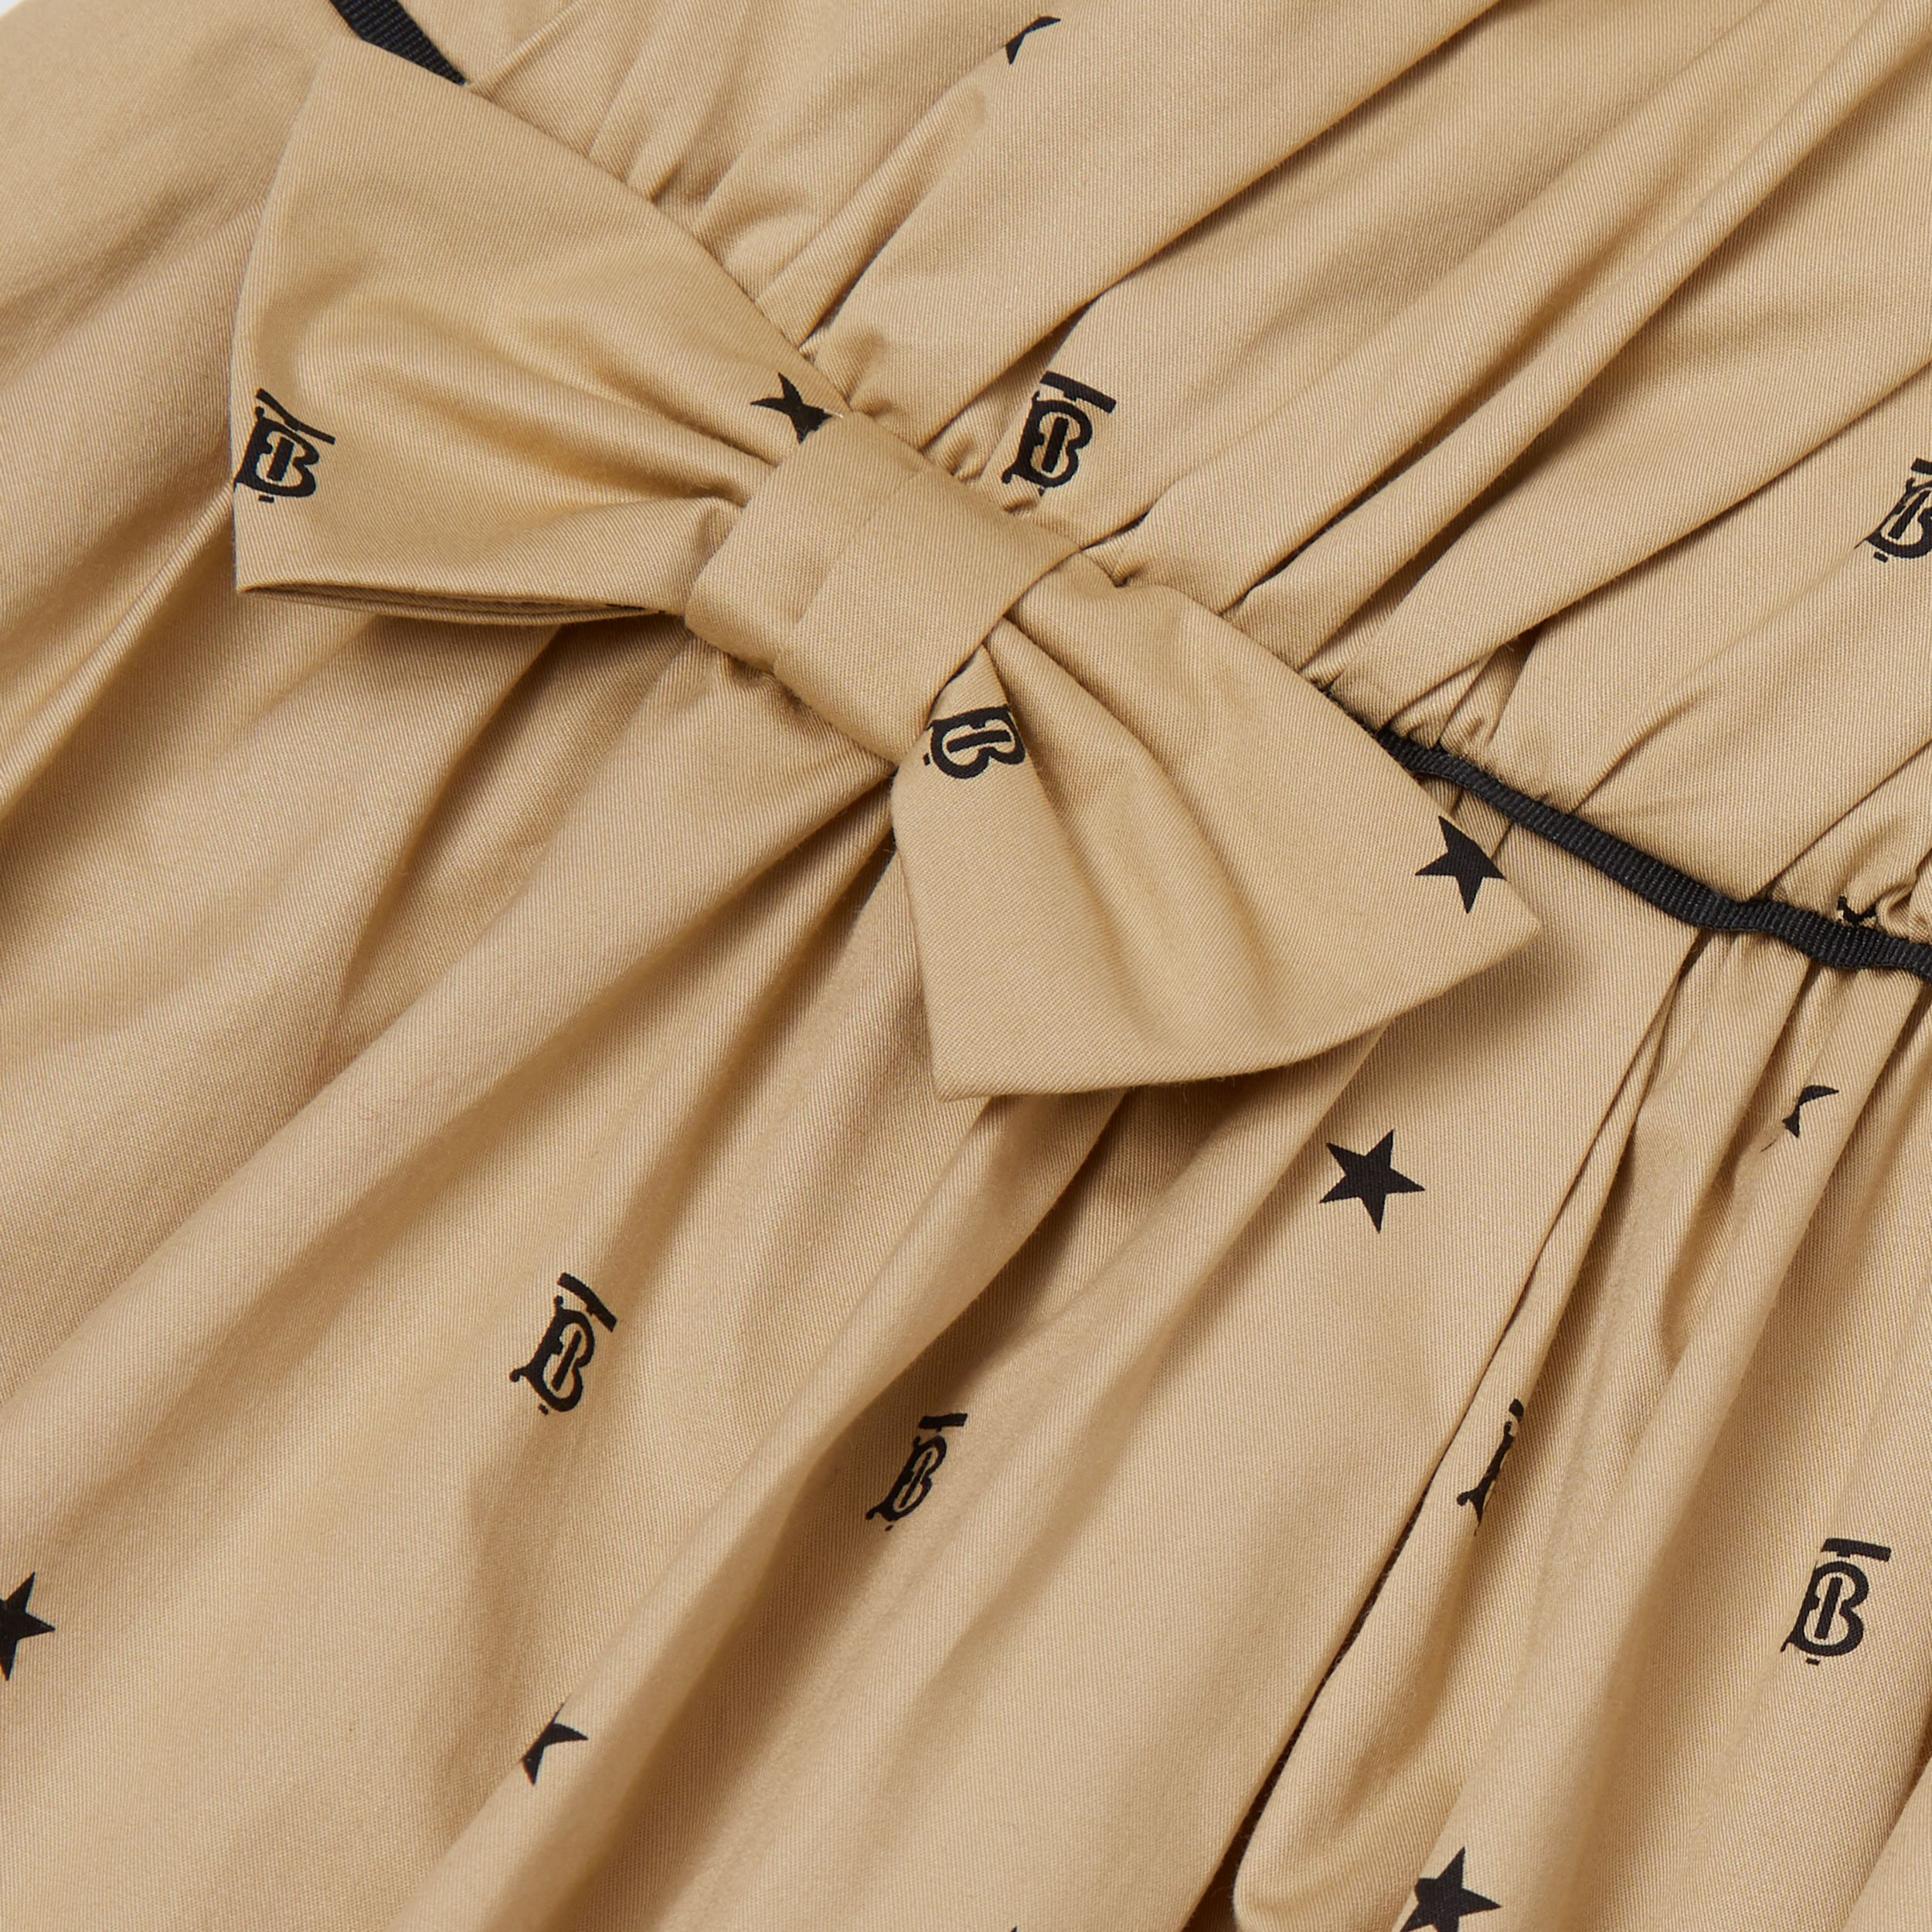 Star and Monogram Motif Stretch Cotton Dress in Sand | Burberry Hong Kong S.A.R. - 2